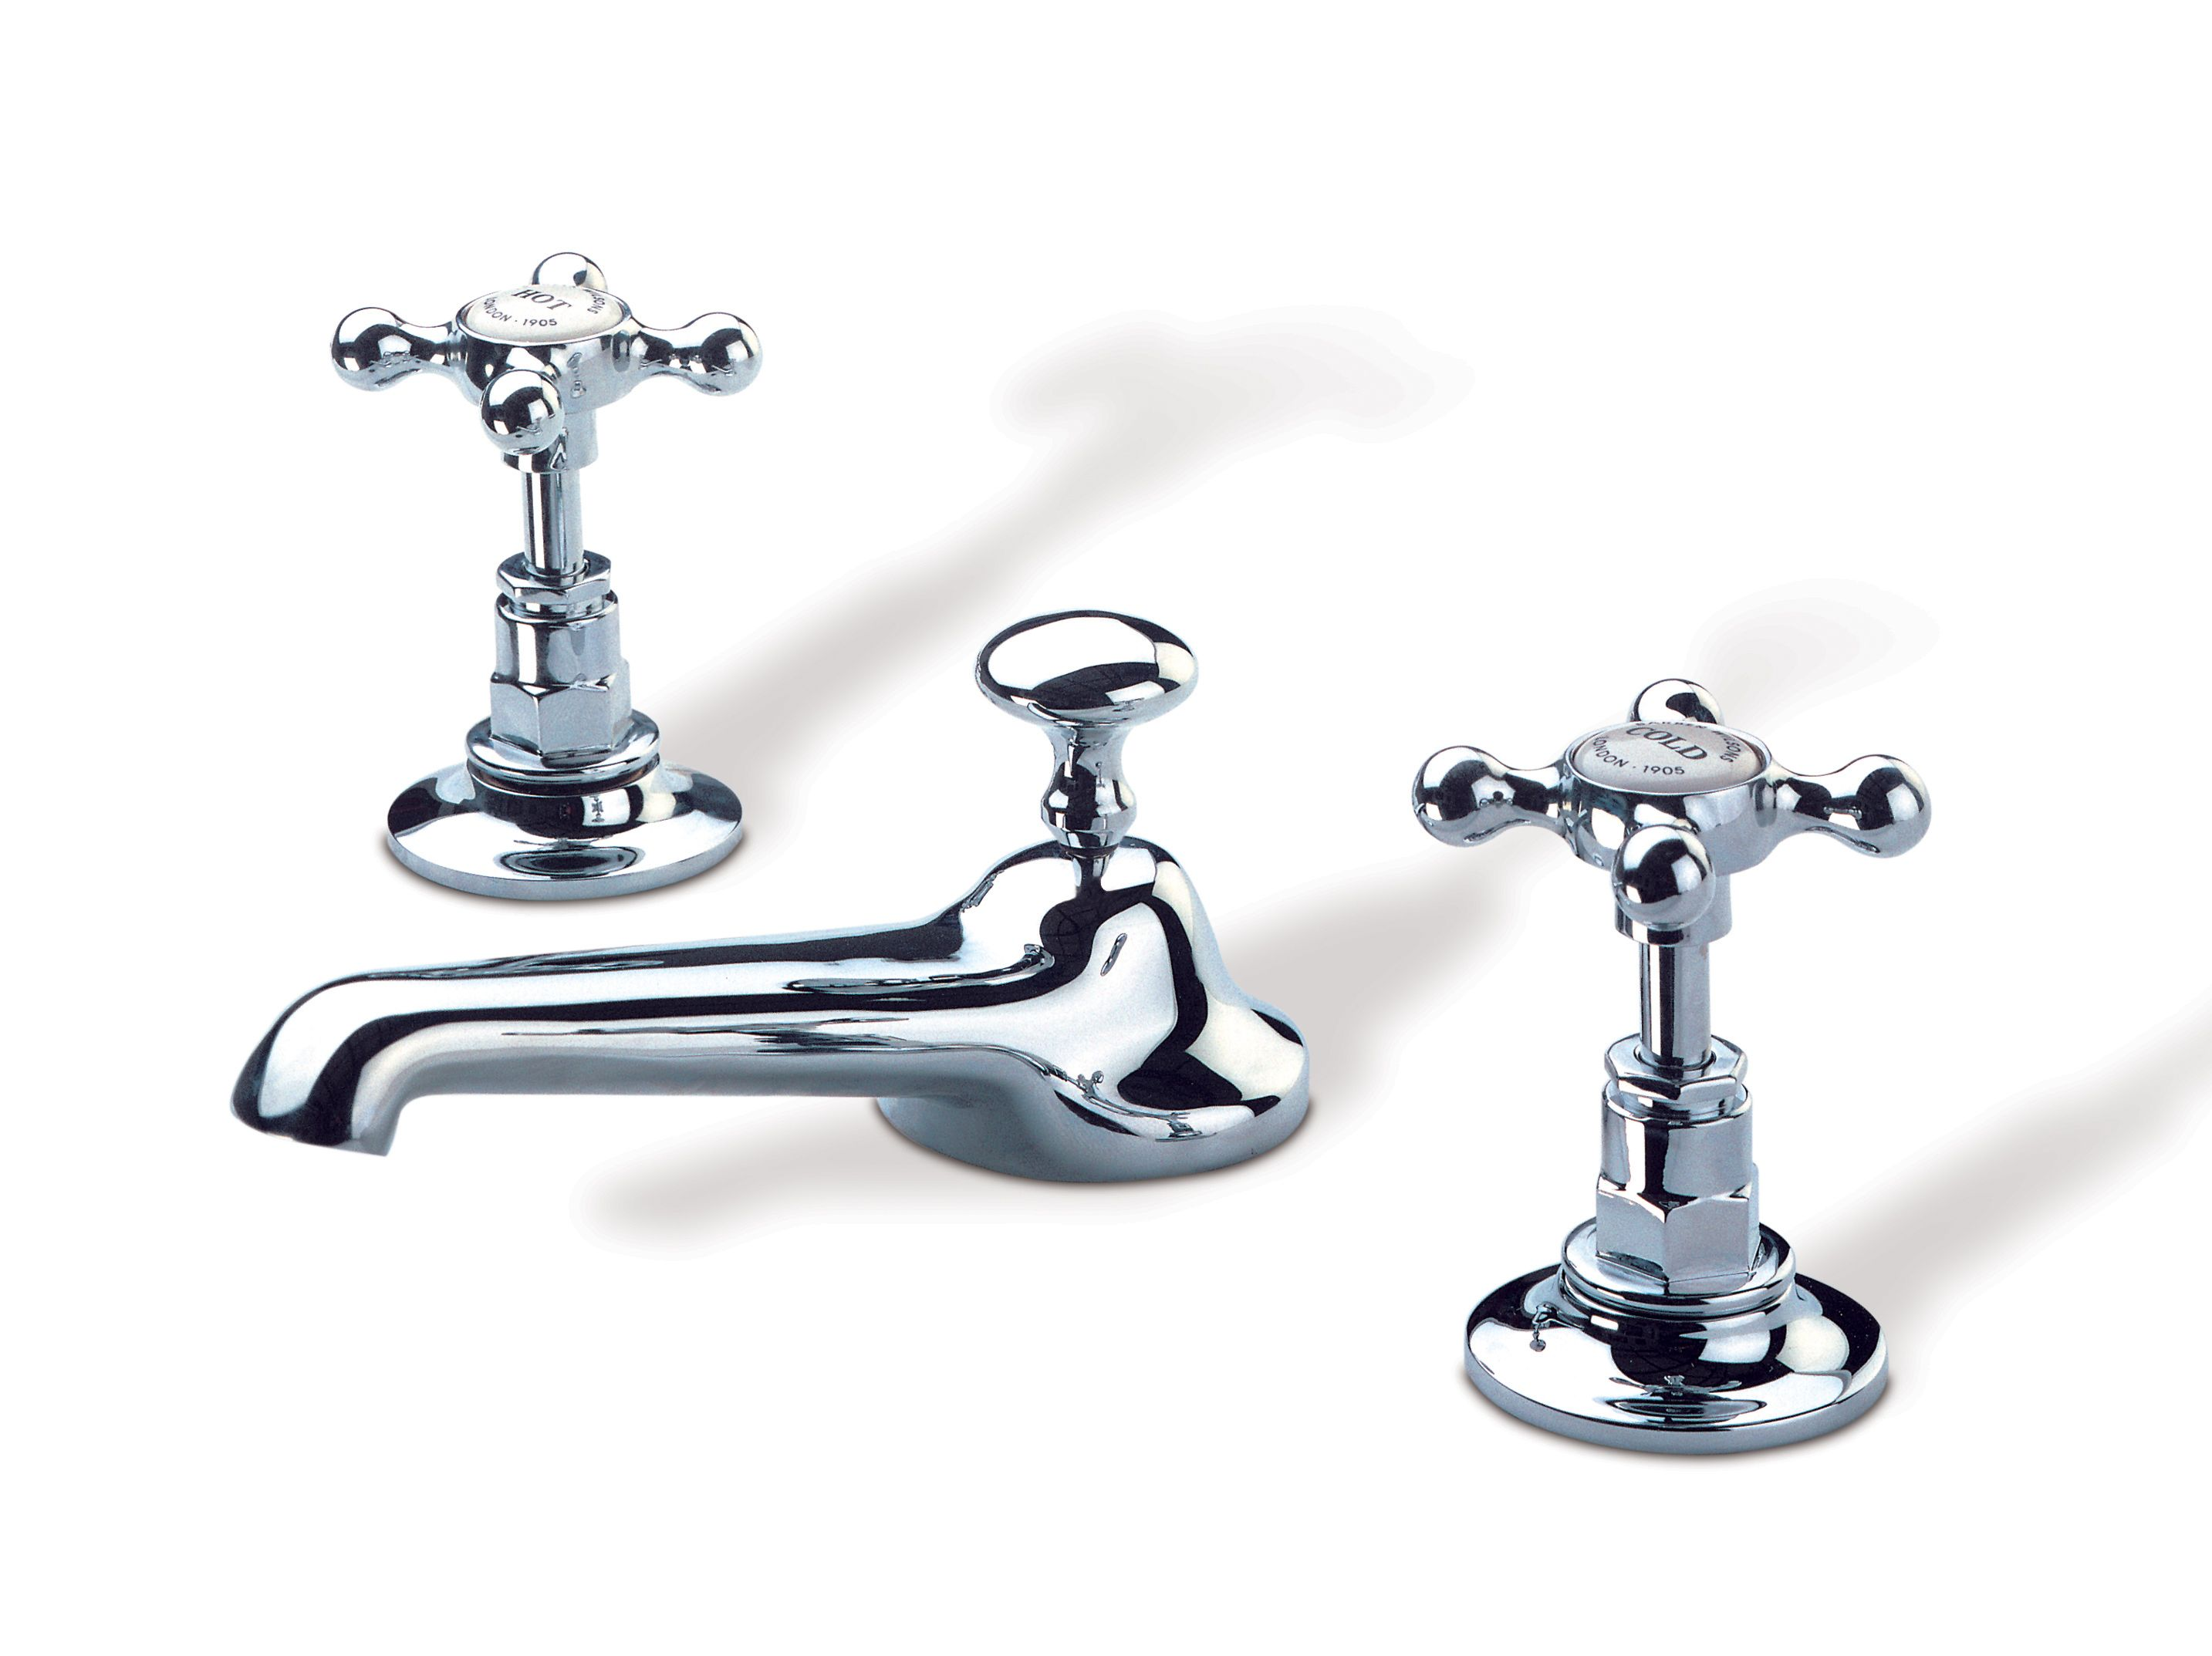 faucet street city architecture faucets kitchens pin york barber wilson studio east zung new